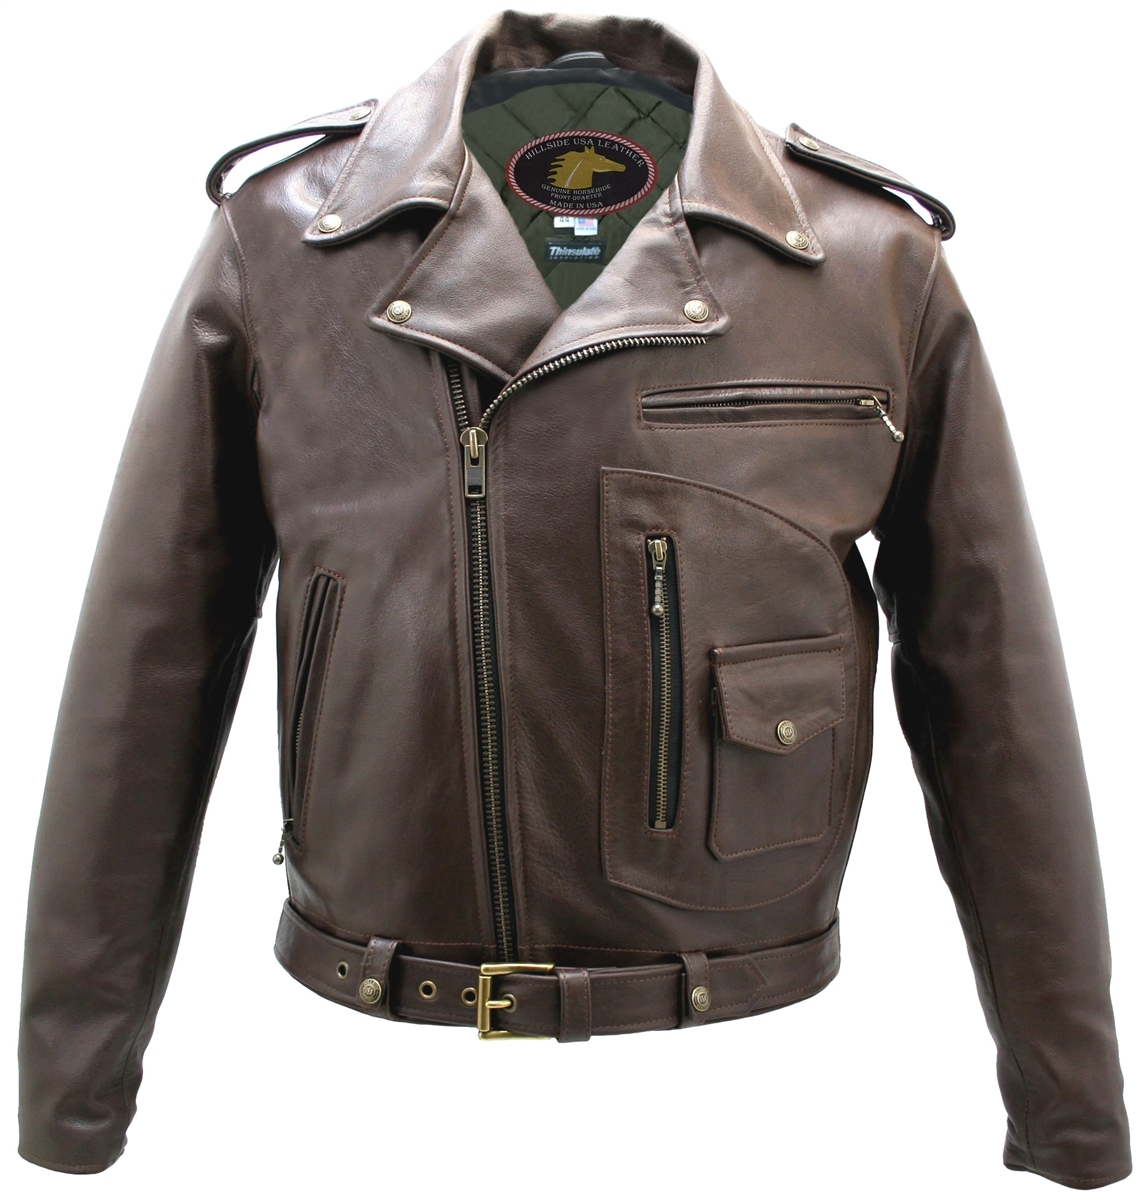 Leather motorcycle jacket care